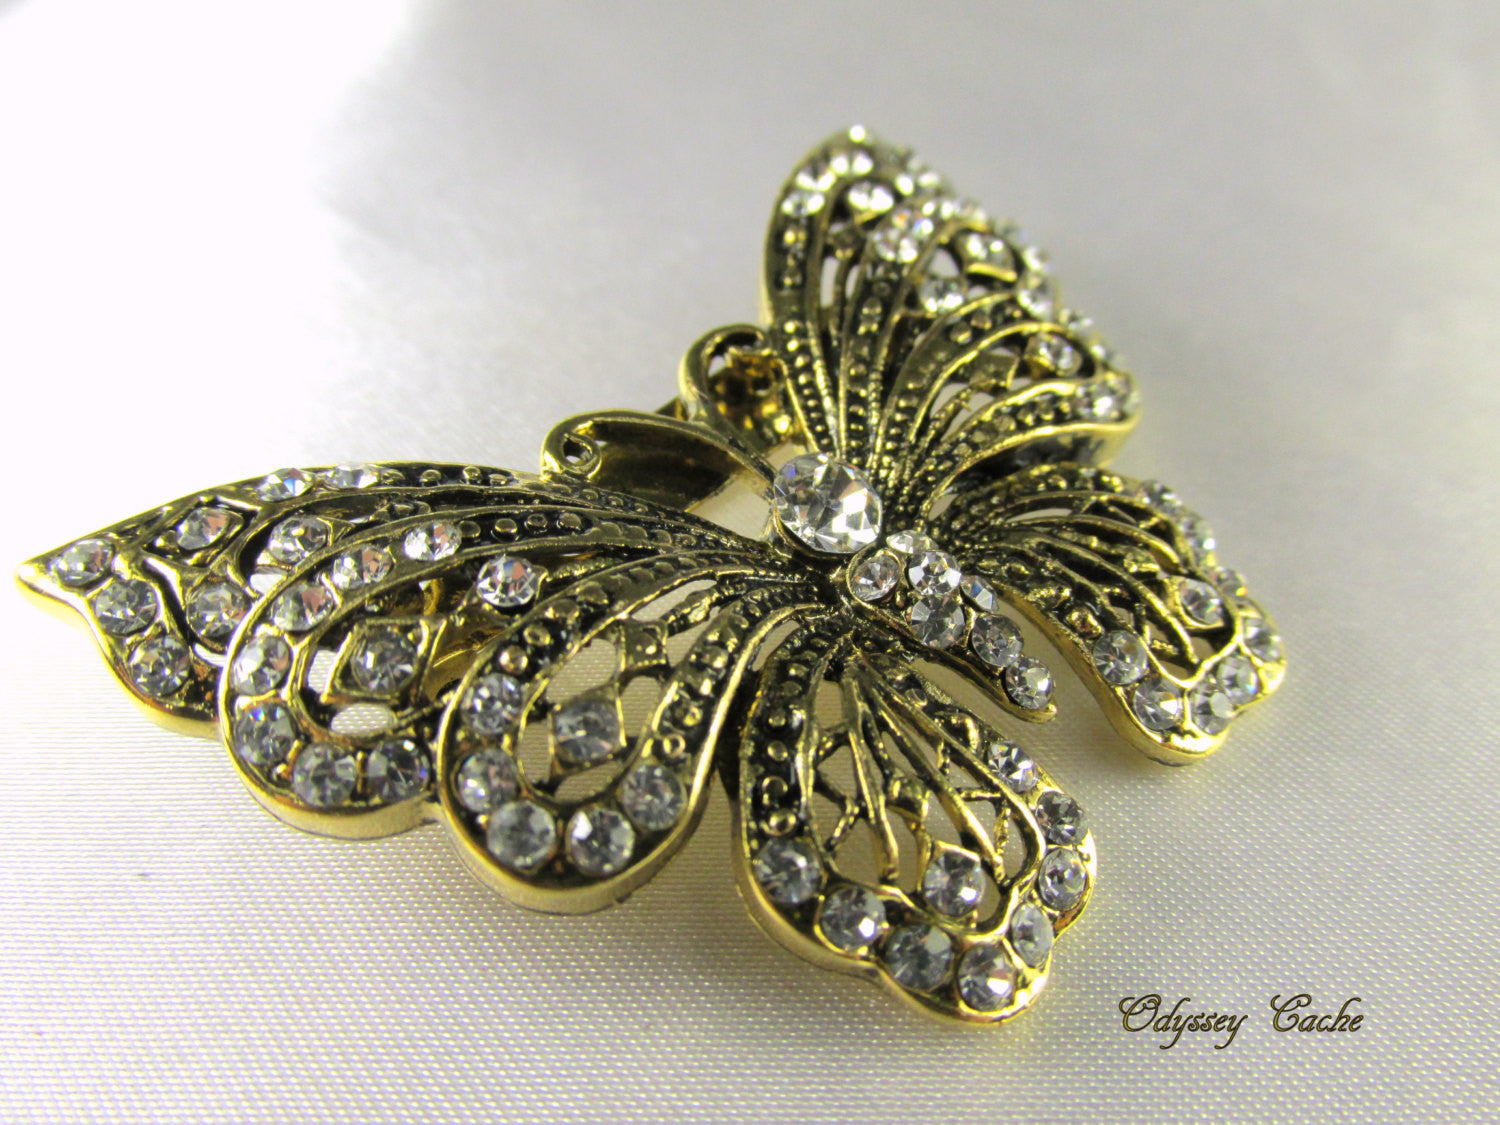 Butterfly Brooch in Antique Gold and Clear Crystals - Odyssey Creations